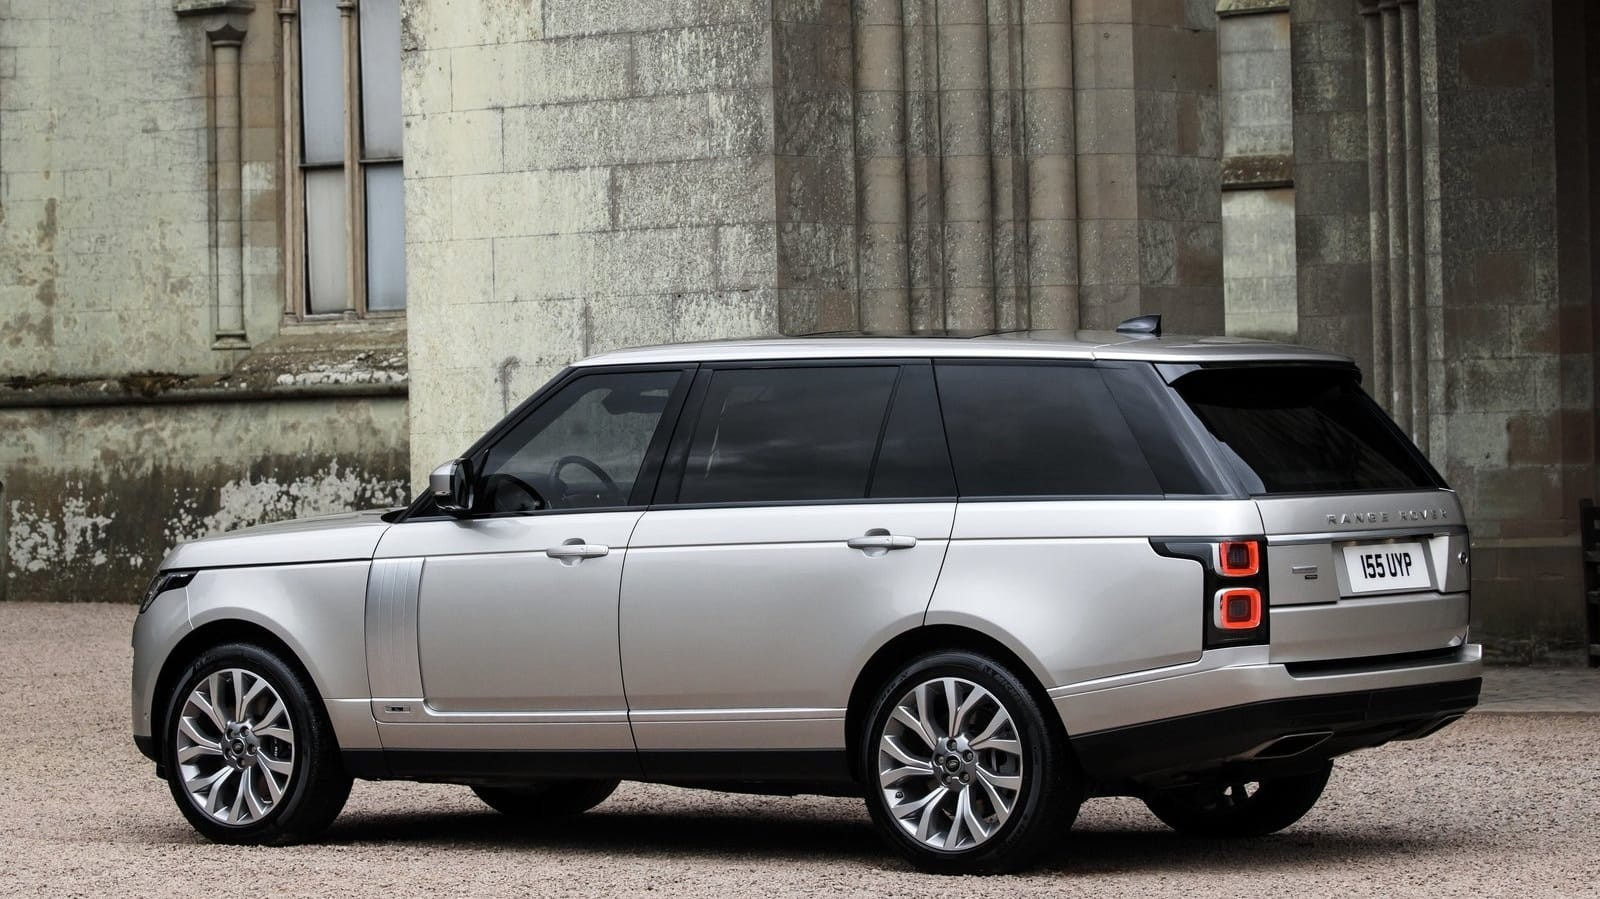 Why The Royals Love Land Rover